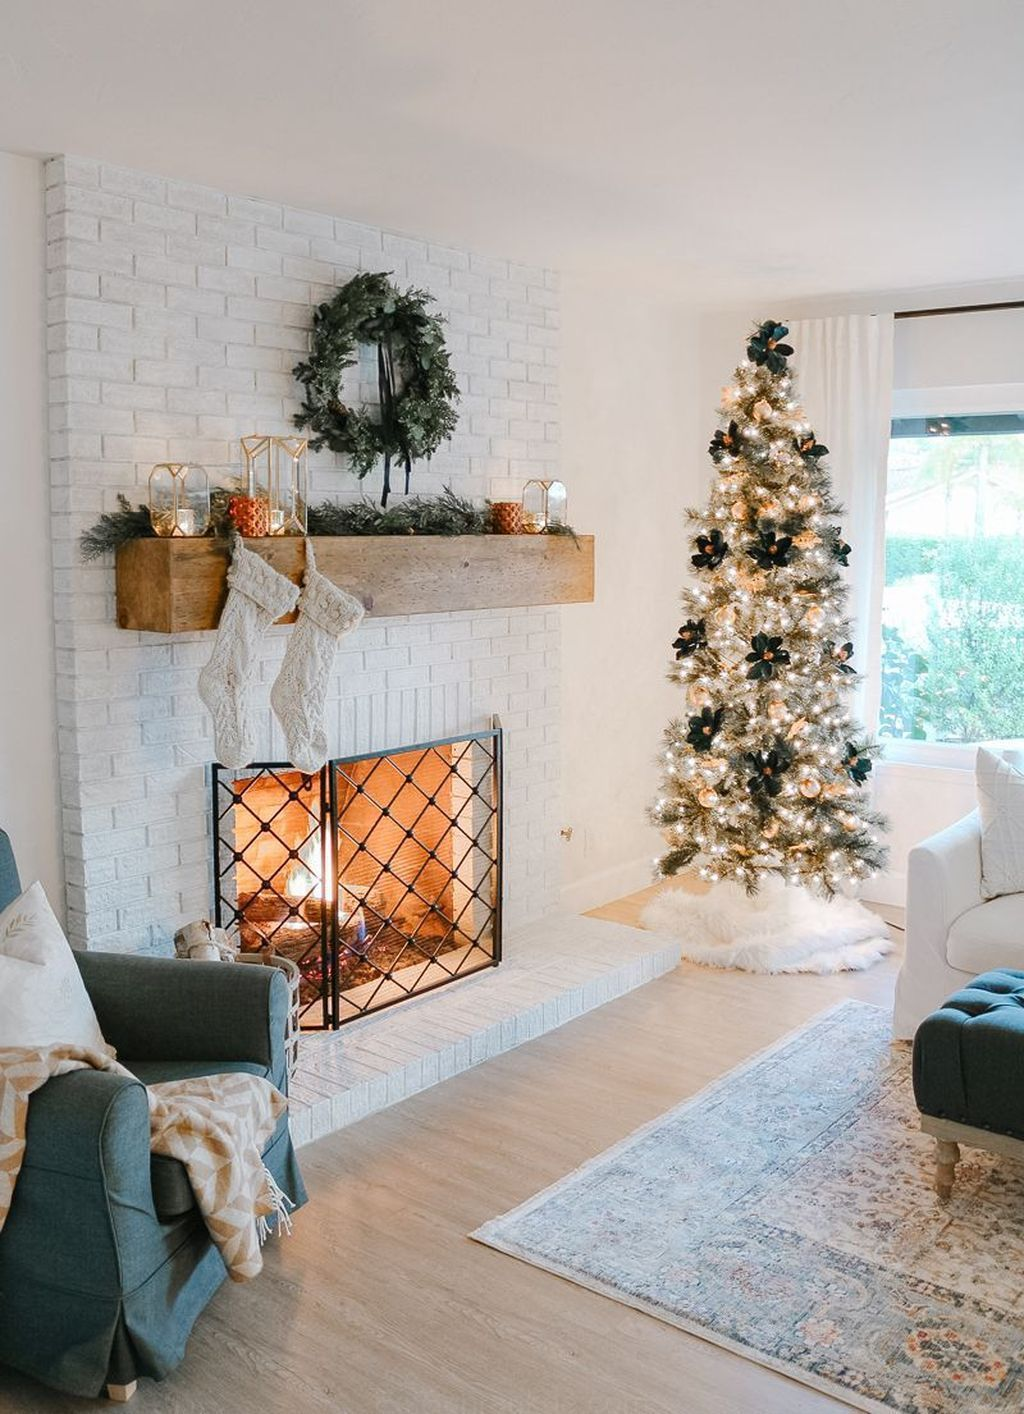 55 Small Apartment Christmas Tree Living Room Decor Ideas #smallapartmentchristmasdecor 55 Small Apartment Christmas Tree Living Room Decor Ideas #smallapartmentchristmasdecor